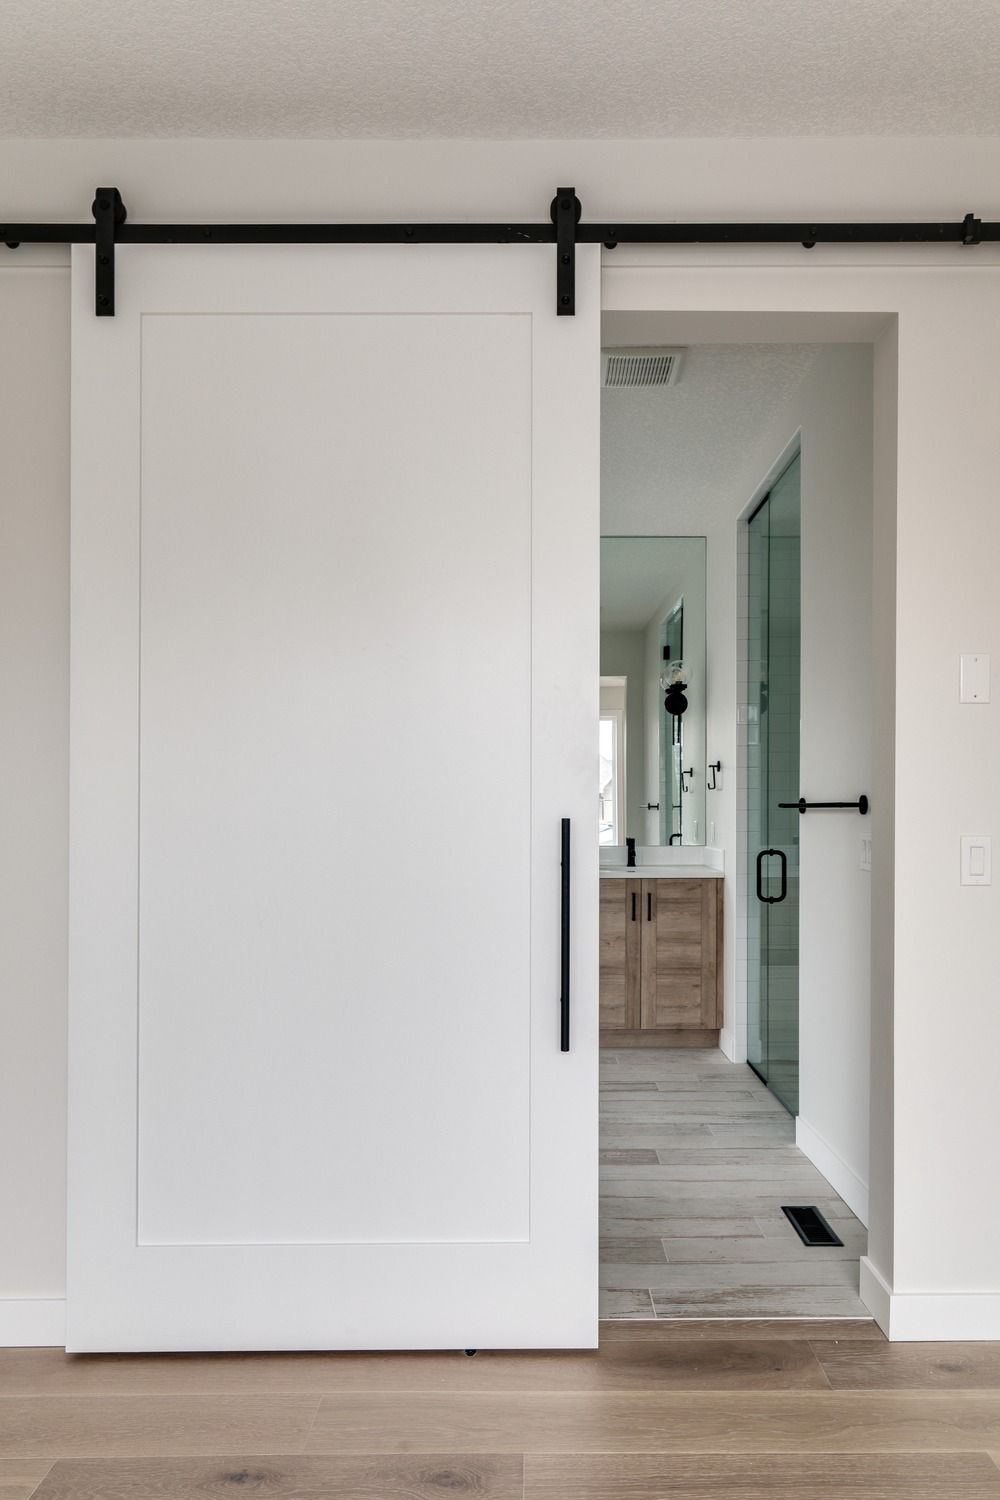 How Elegant Is This White Sliding Barn Door With Black Hardware We Love The Simplicity In 2020 White Barn Door White Doors Barn Door